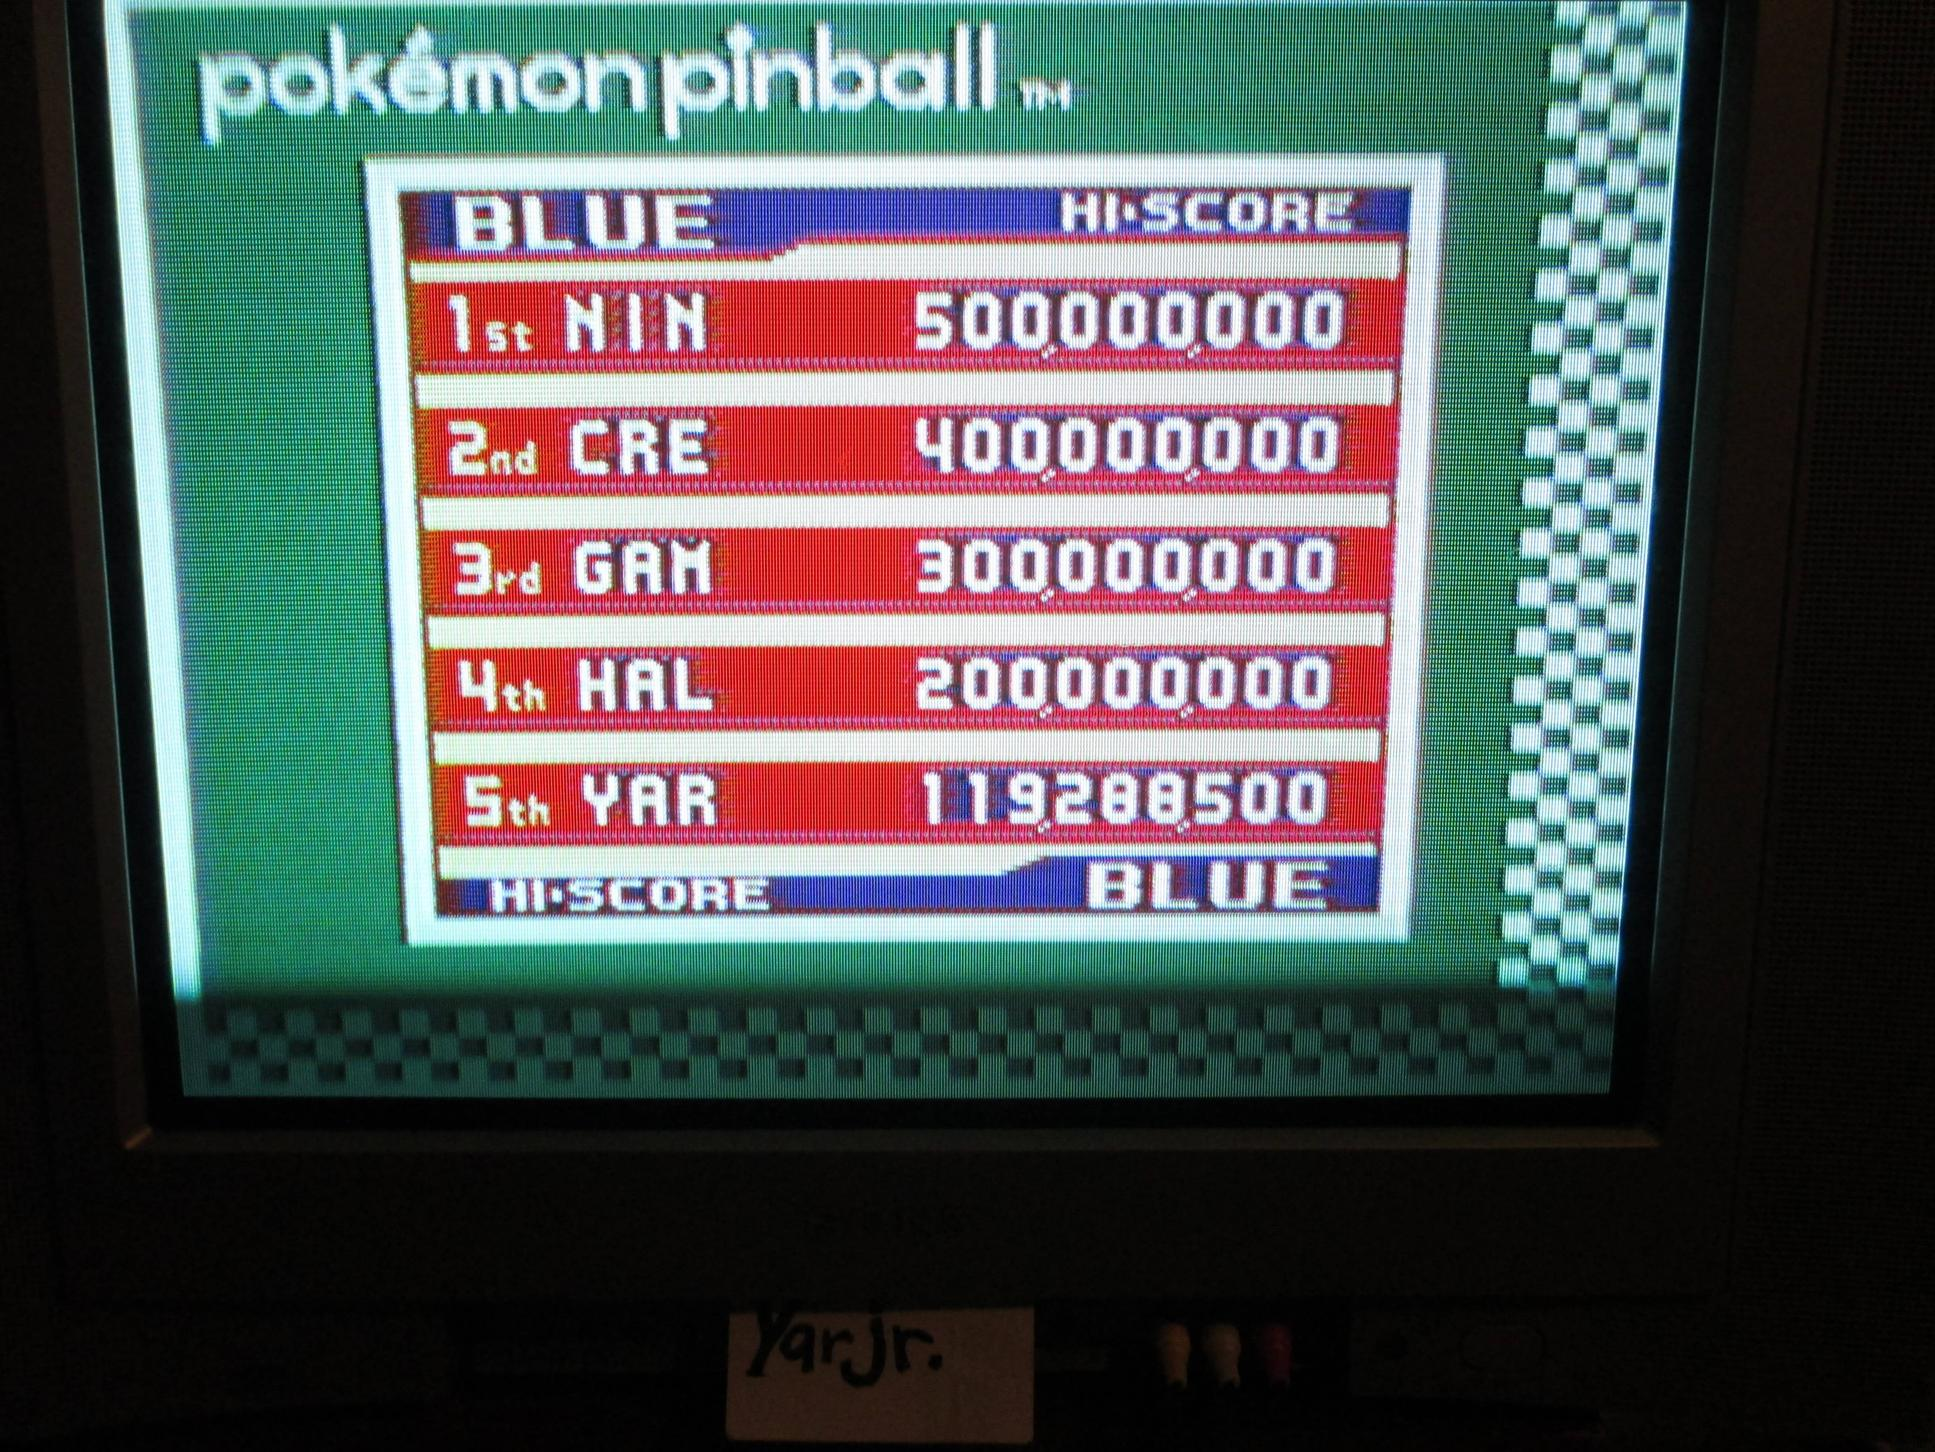 Pokemon Pinball 119,288,500 points